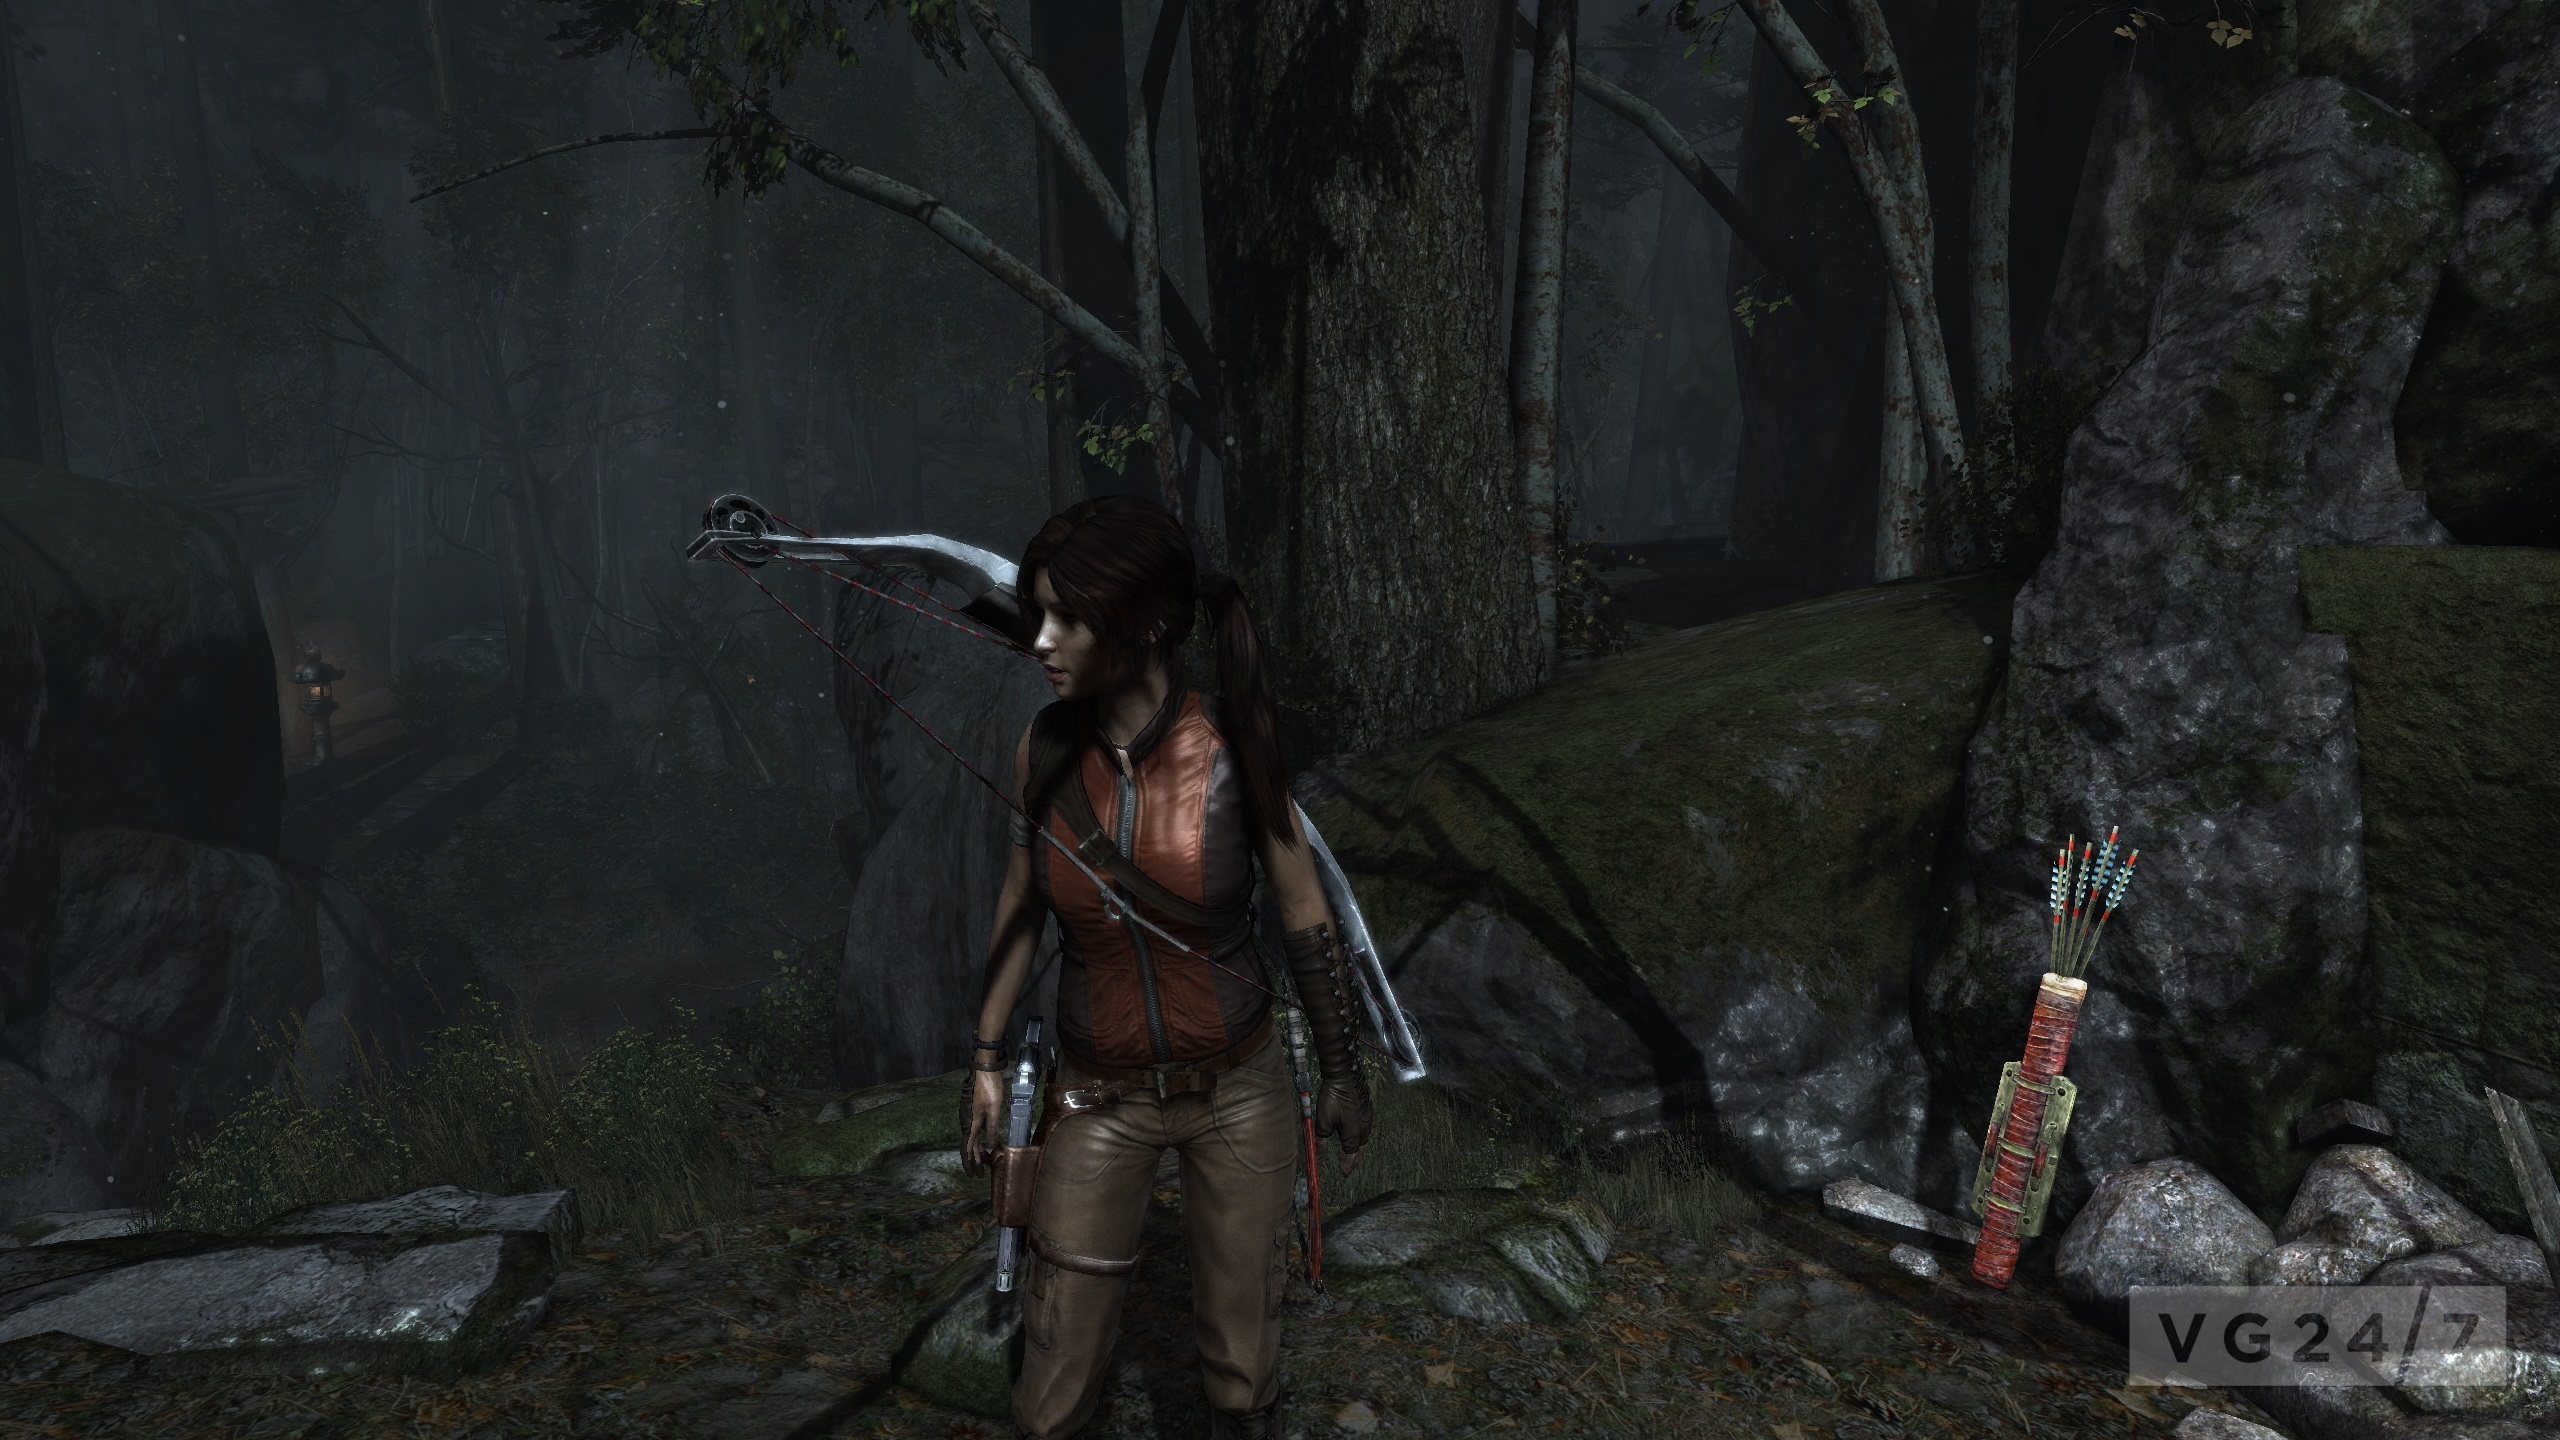 Tomb raider single player dlc outfits potentially leaked see them